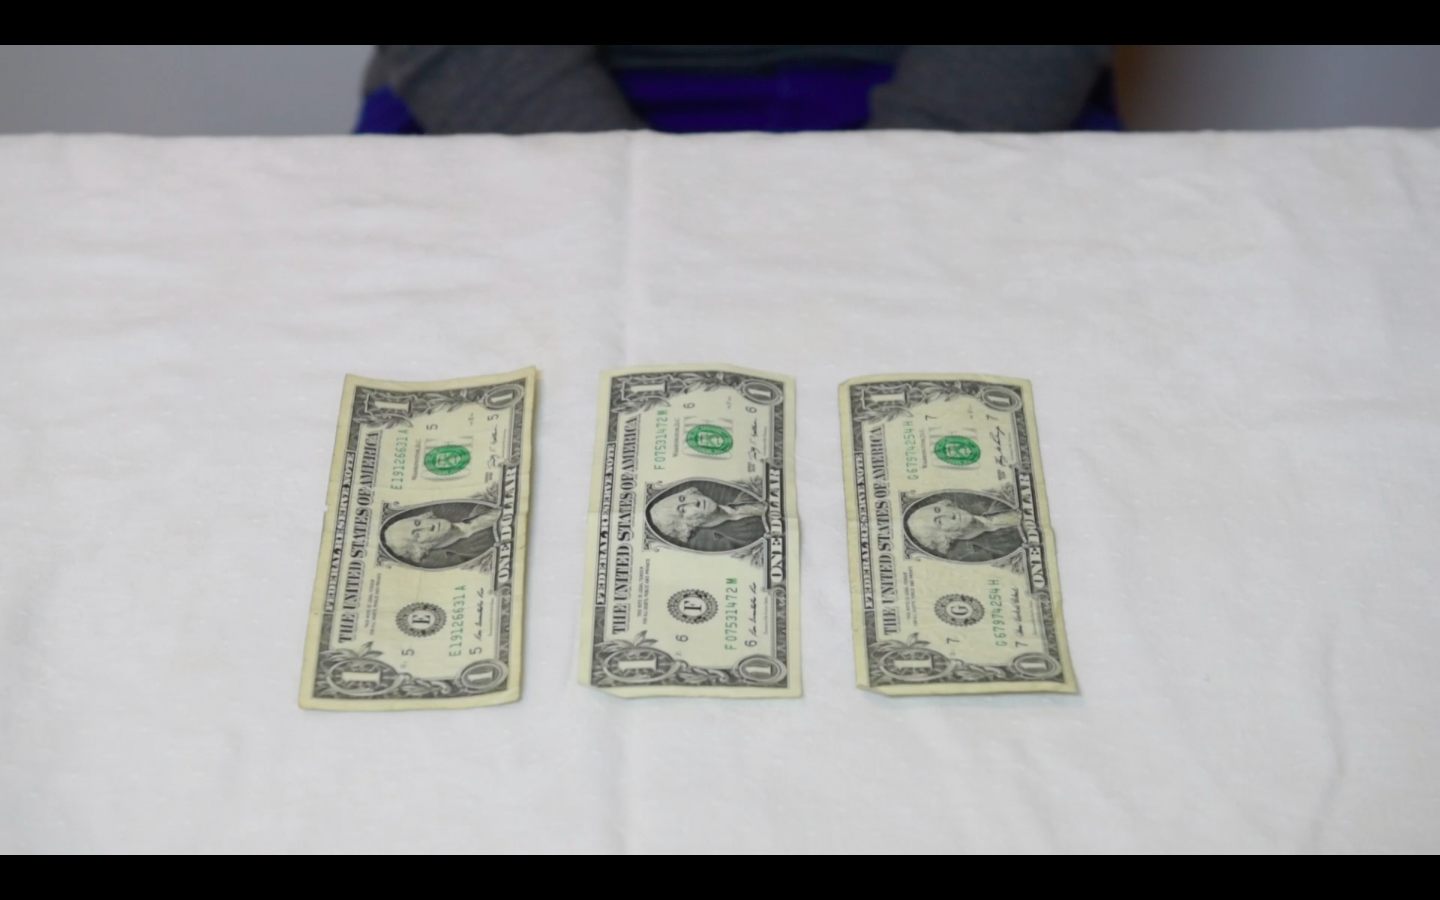 Picture of Origami Flower: How to Fold the Dollar Bills - Fold 1